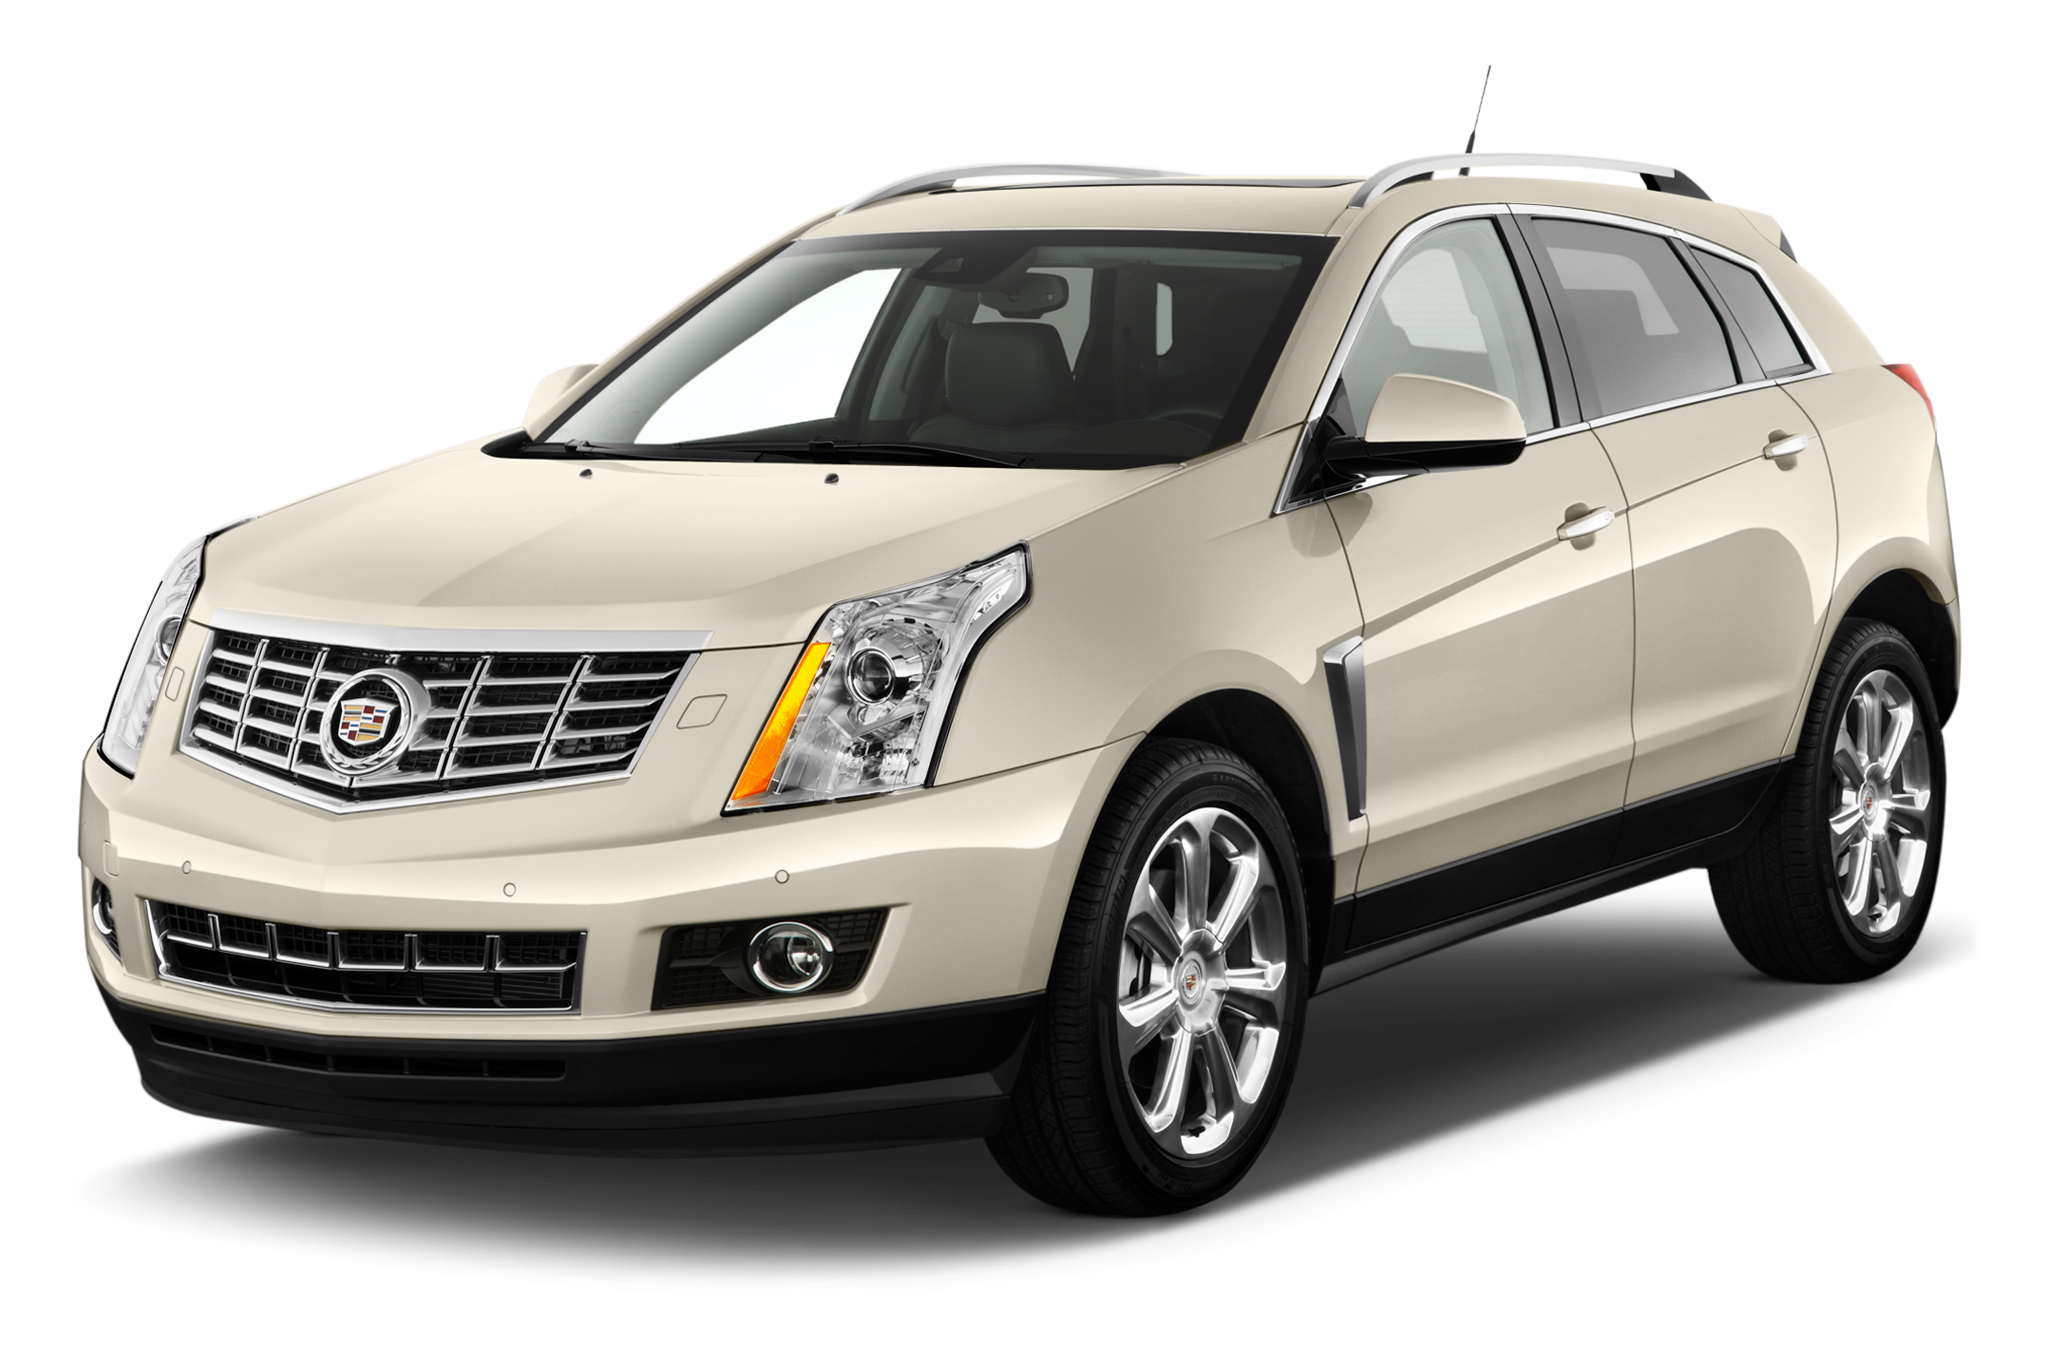 luxury north collection coast city in mall cadillac akron revo of auto srx oh